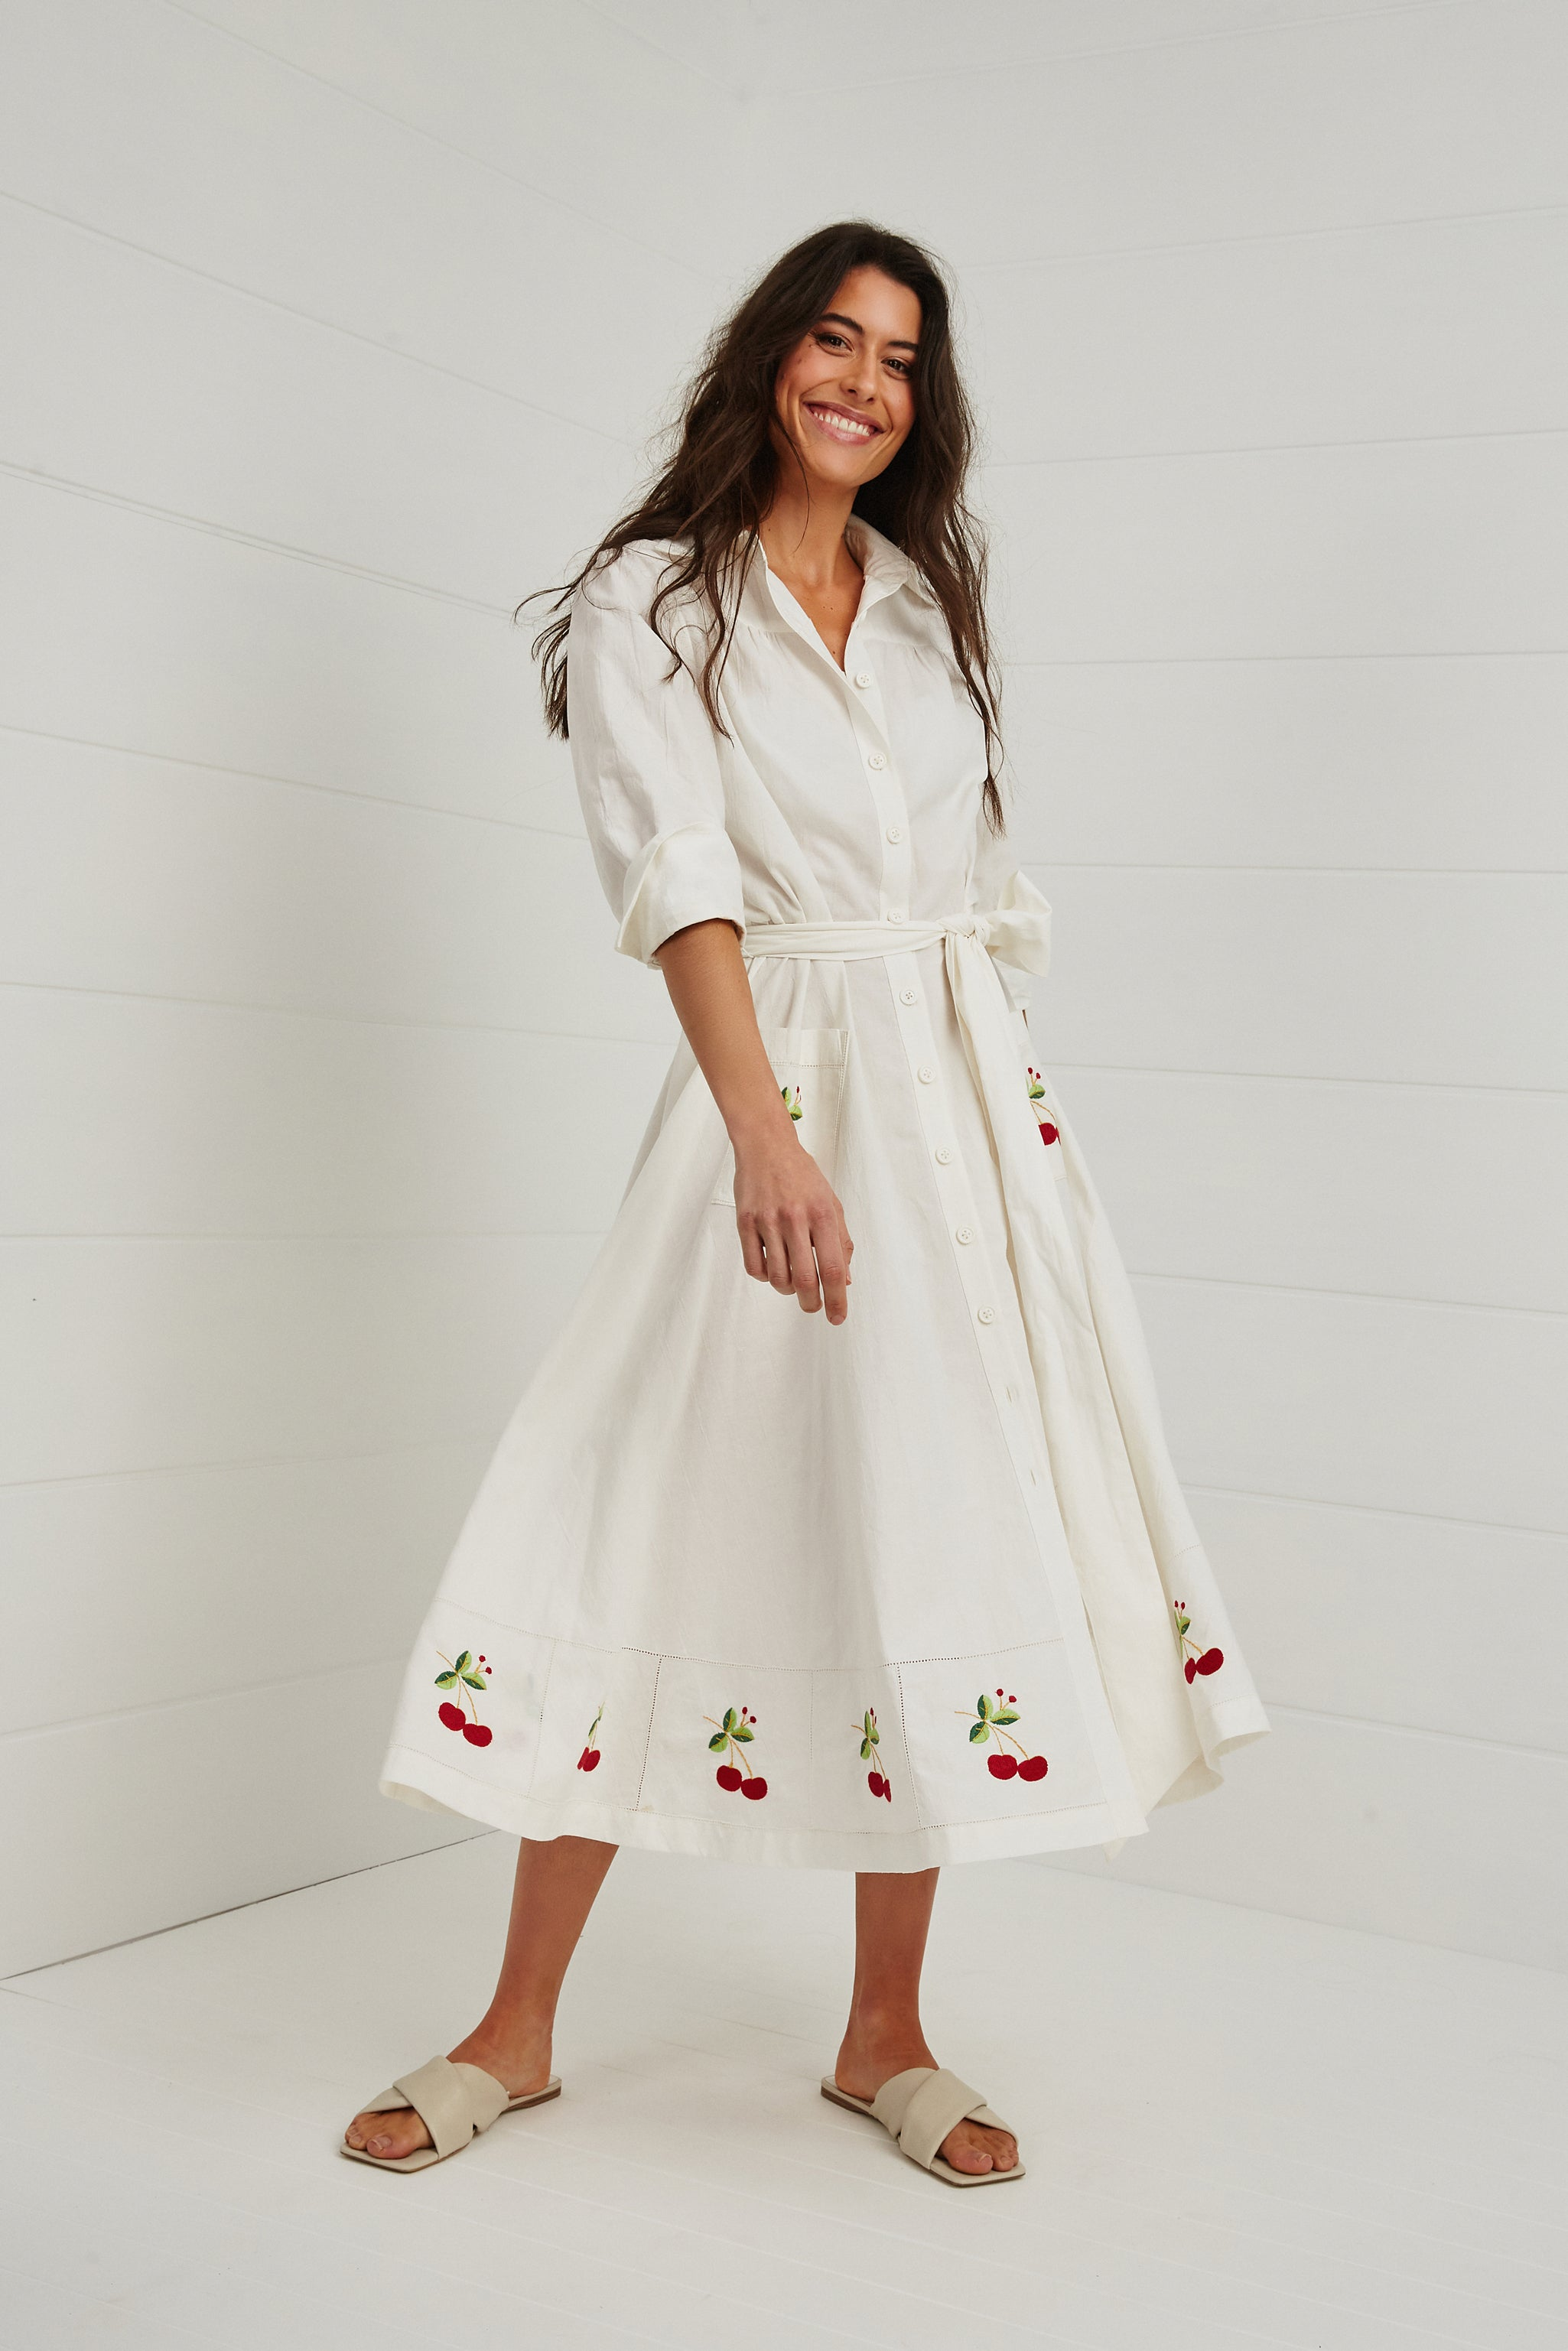 'A CHERRY CHERRY CHRISTMAS' SHIRT DRESS